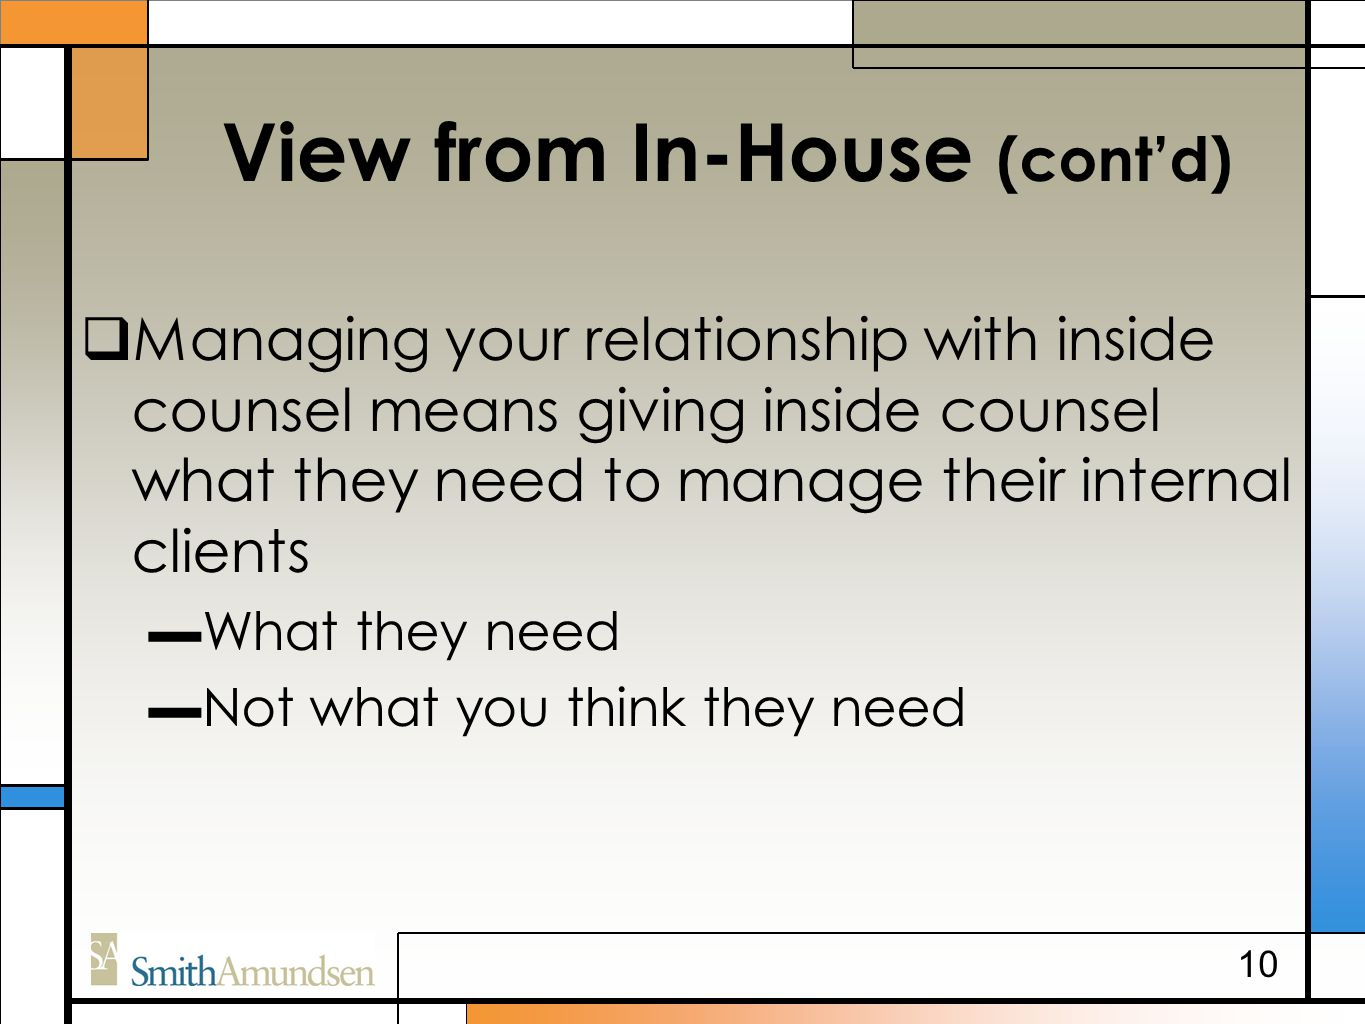 View from In-House (cont'd)  Managing your relationship with inside counsel means giving inside counsel what they need to manage their internal clients ▬What they need ▬Not what you think they need 10